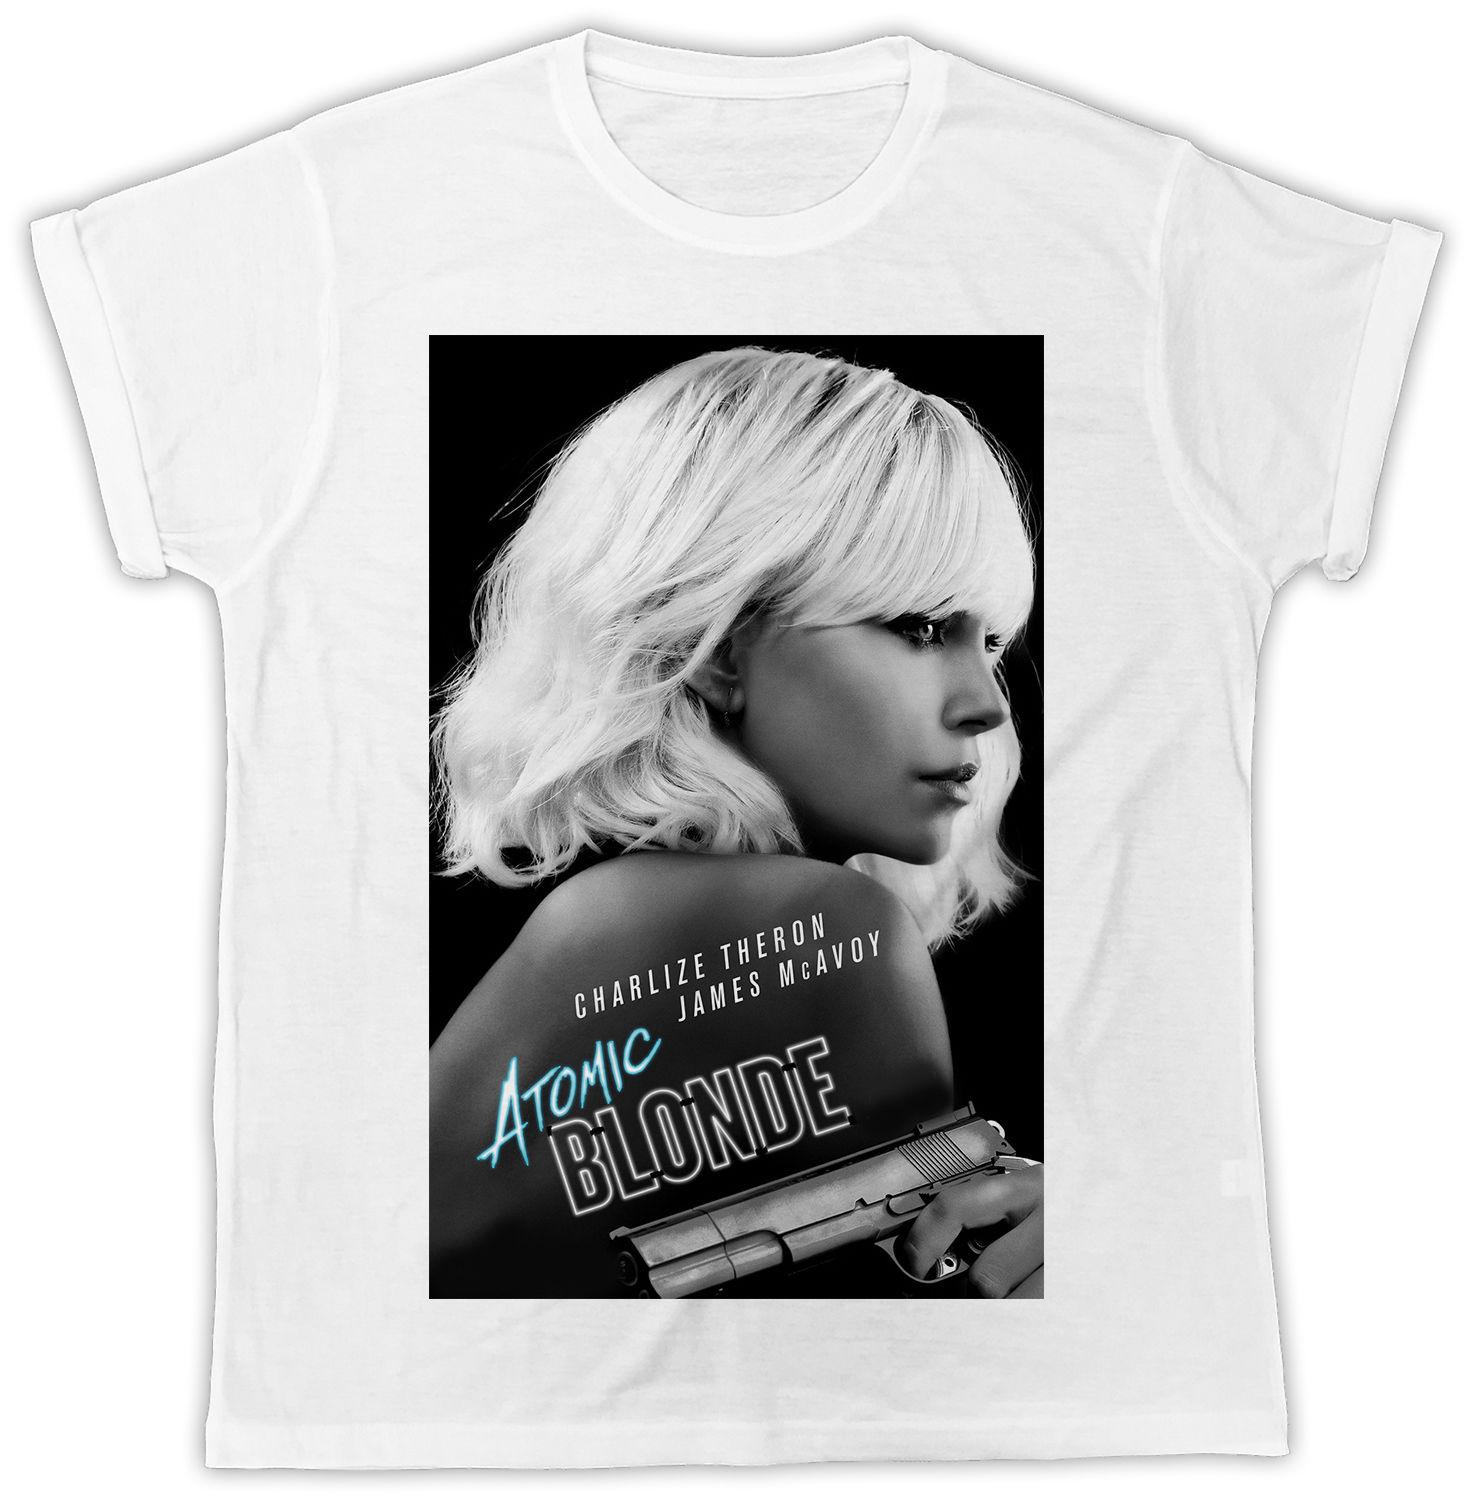 c8a6f084 DEBBIE HARRY ATOMIC BLONDIE POSTER COOL FUNNY IDEAL GIFT UNISEX MENS TSHIRT  Funny Casual Tee Graphic T Shirts Custom Shirt From Fatcuckoo, $12.96|  DHgate.